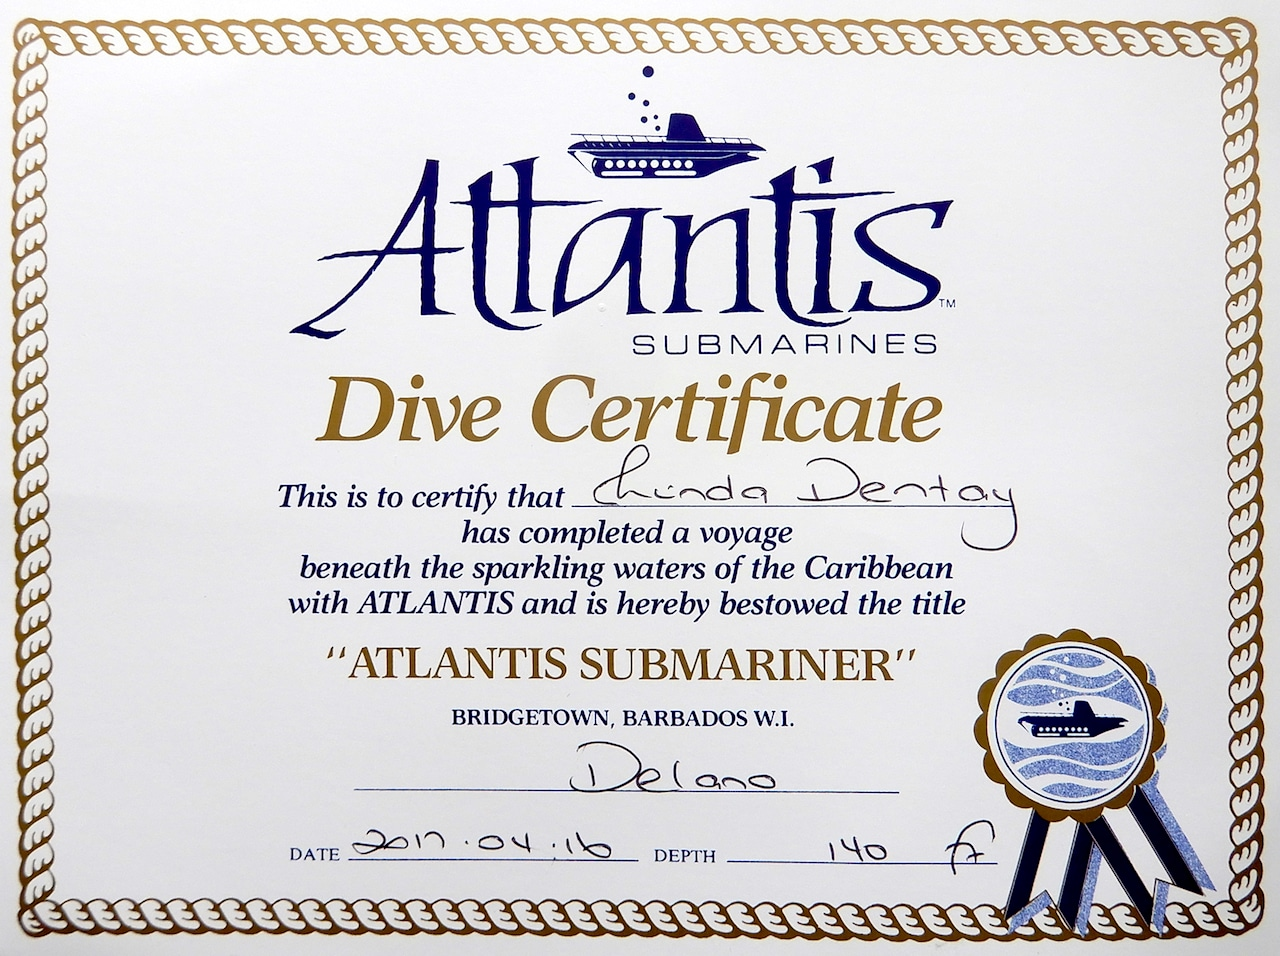 Atlantis Submarine Dive Certificate - Submarine Ride in Barbados.jpg